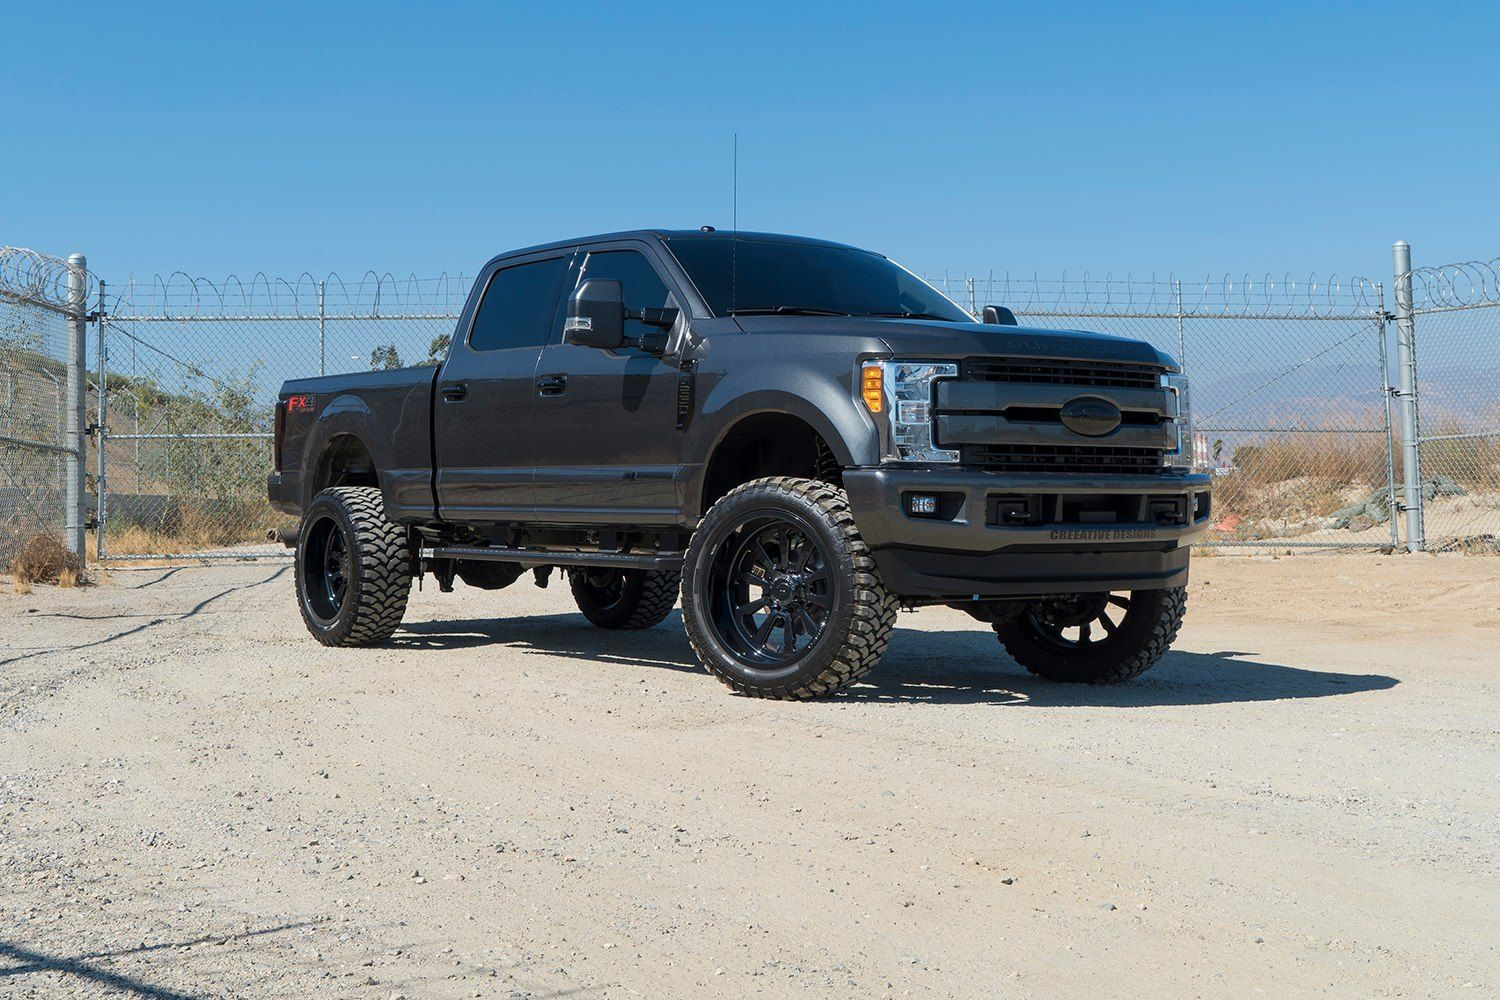 When Style Meets Truck Performance Customized Black Lifted Ford F